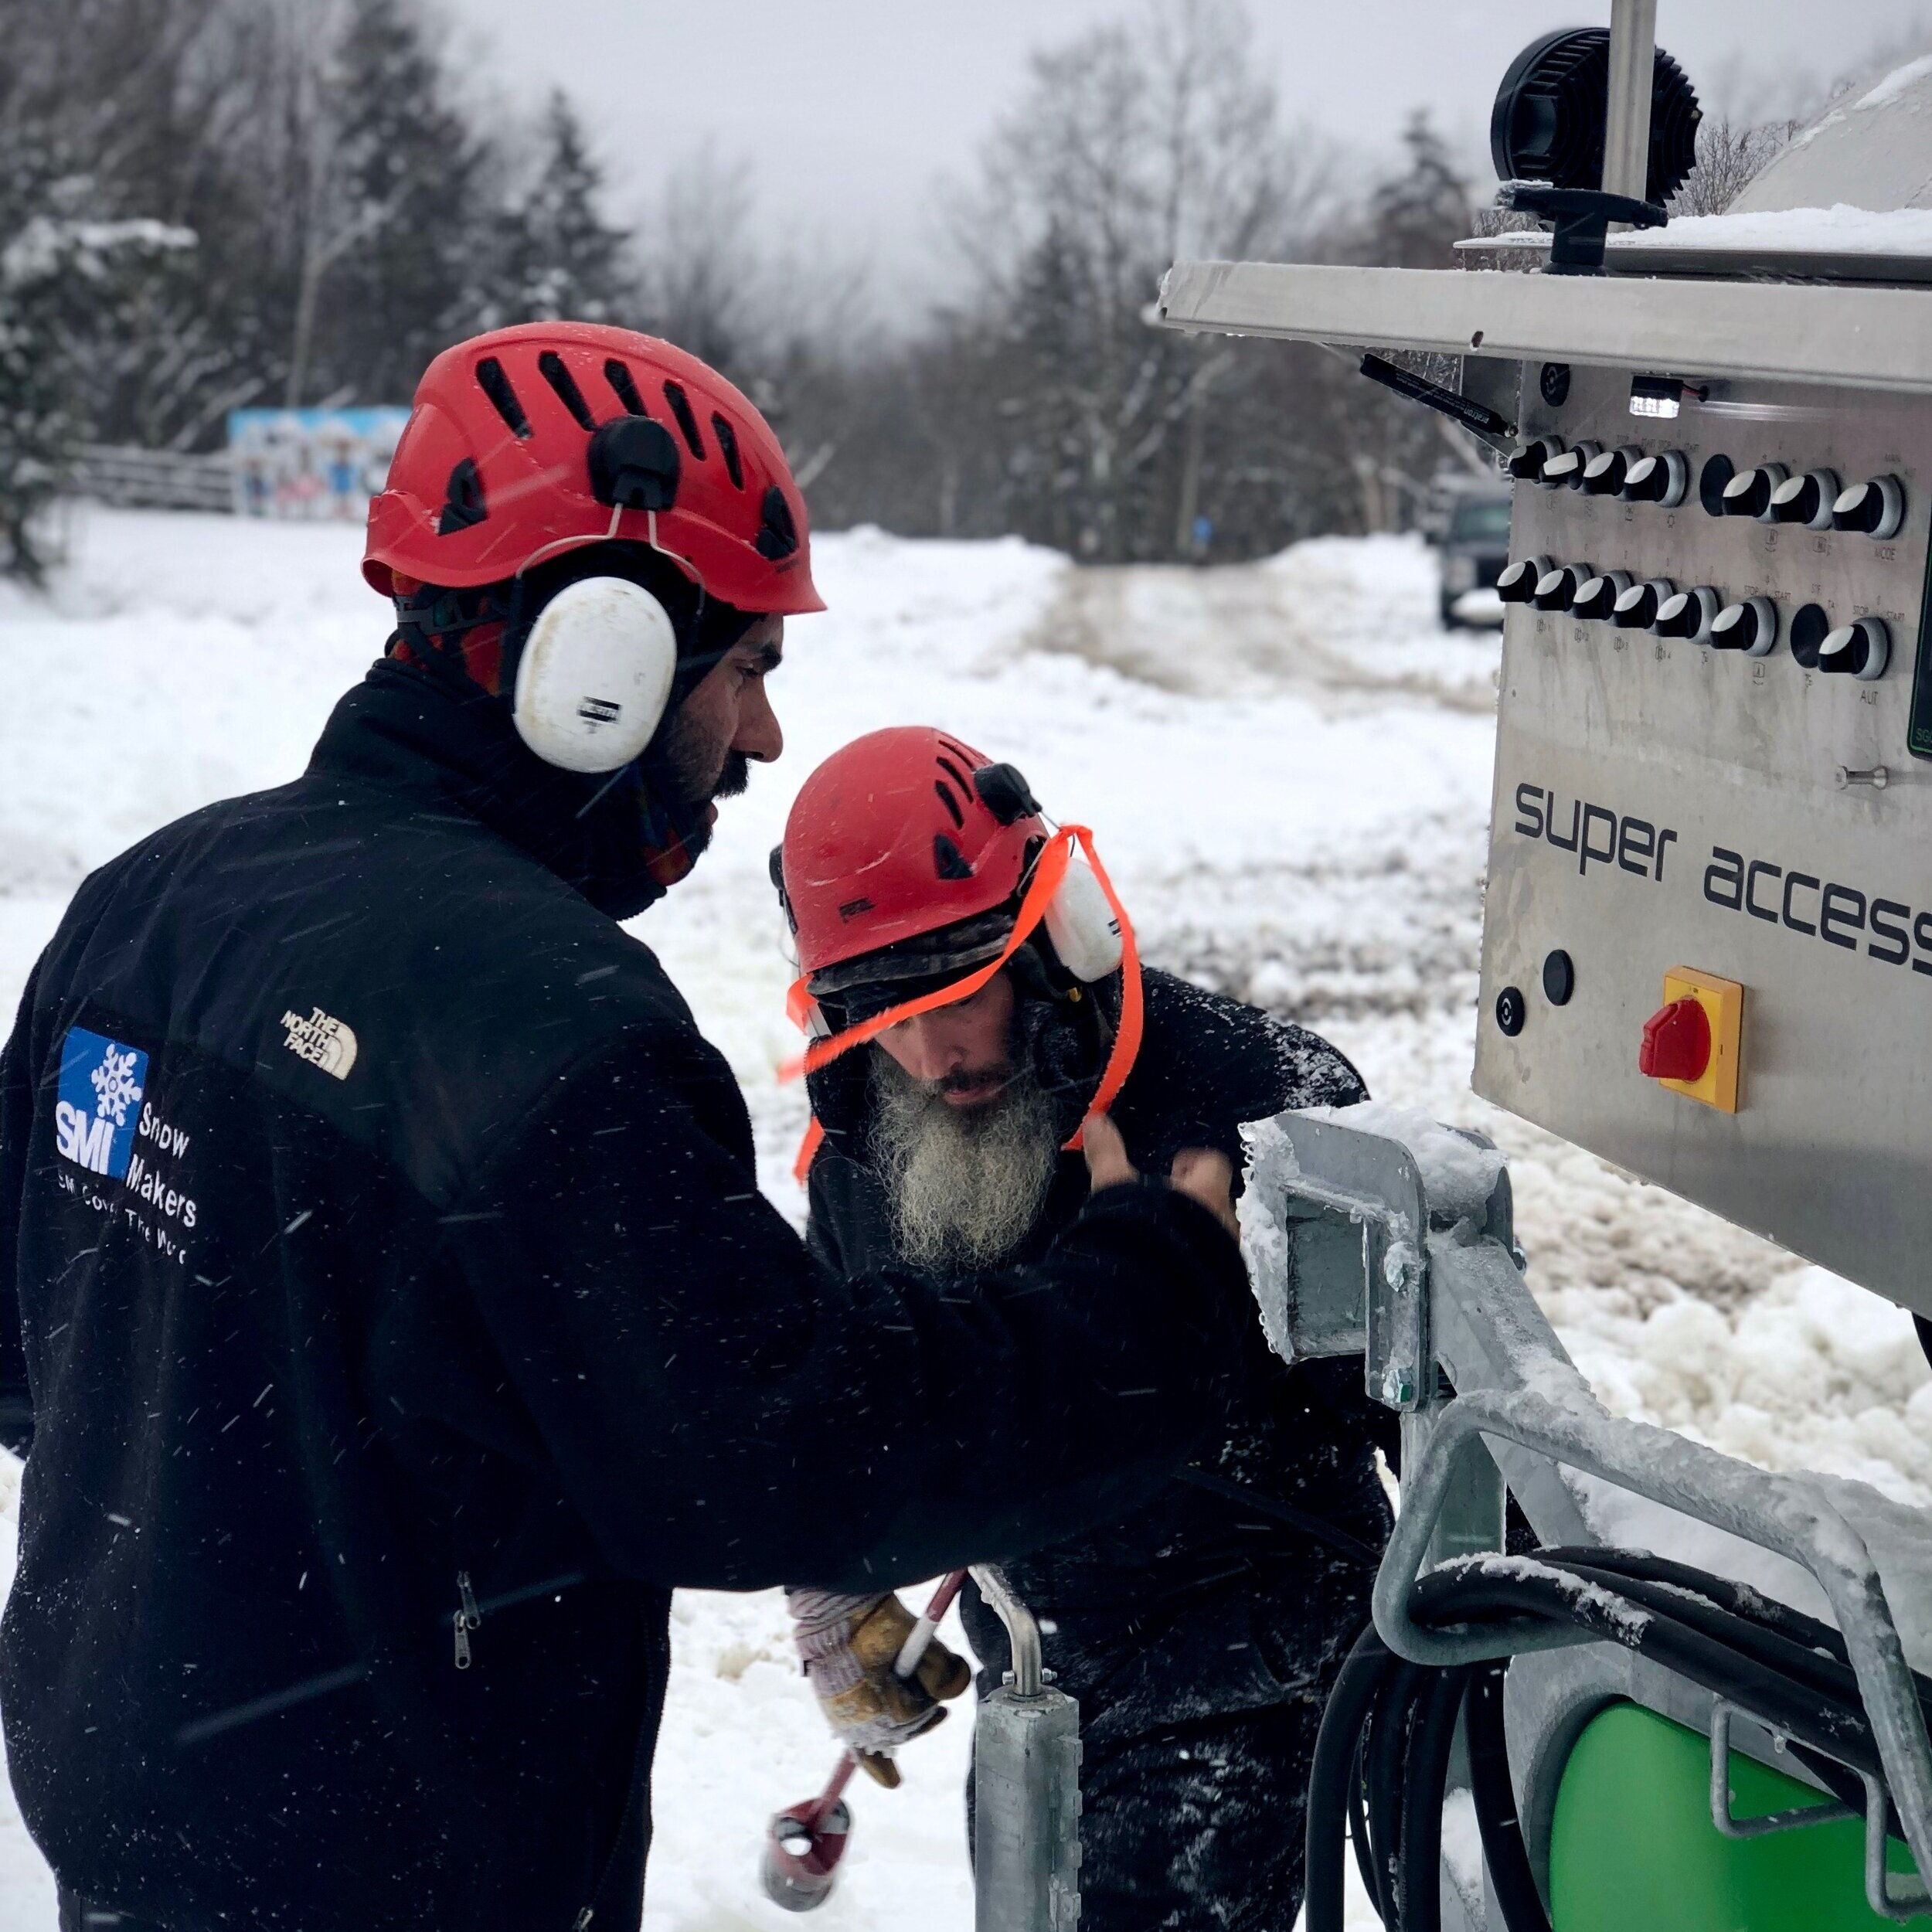 Snowmakers making adjustments on the control panel.